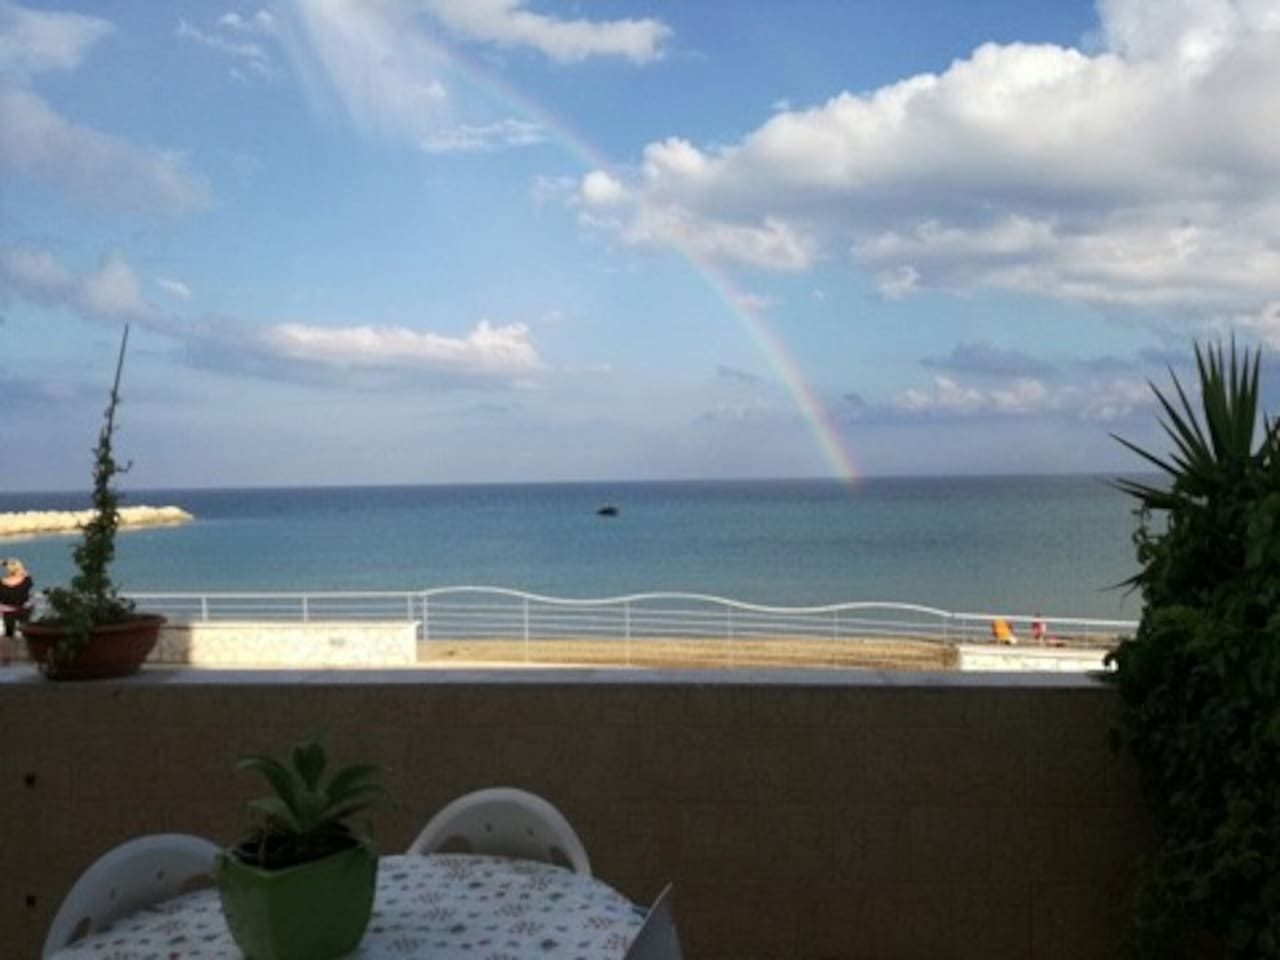 The vieu from the terrace with walking path , the sea and a rainbow